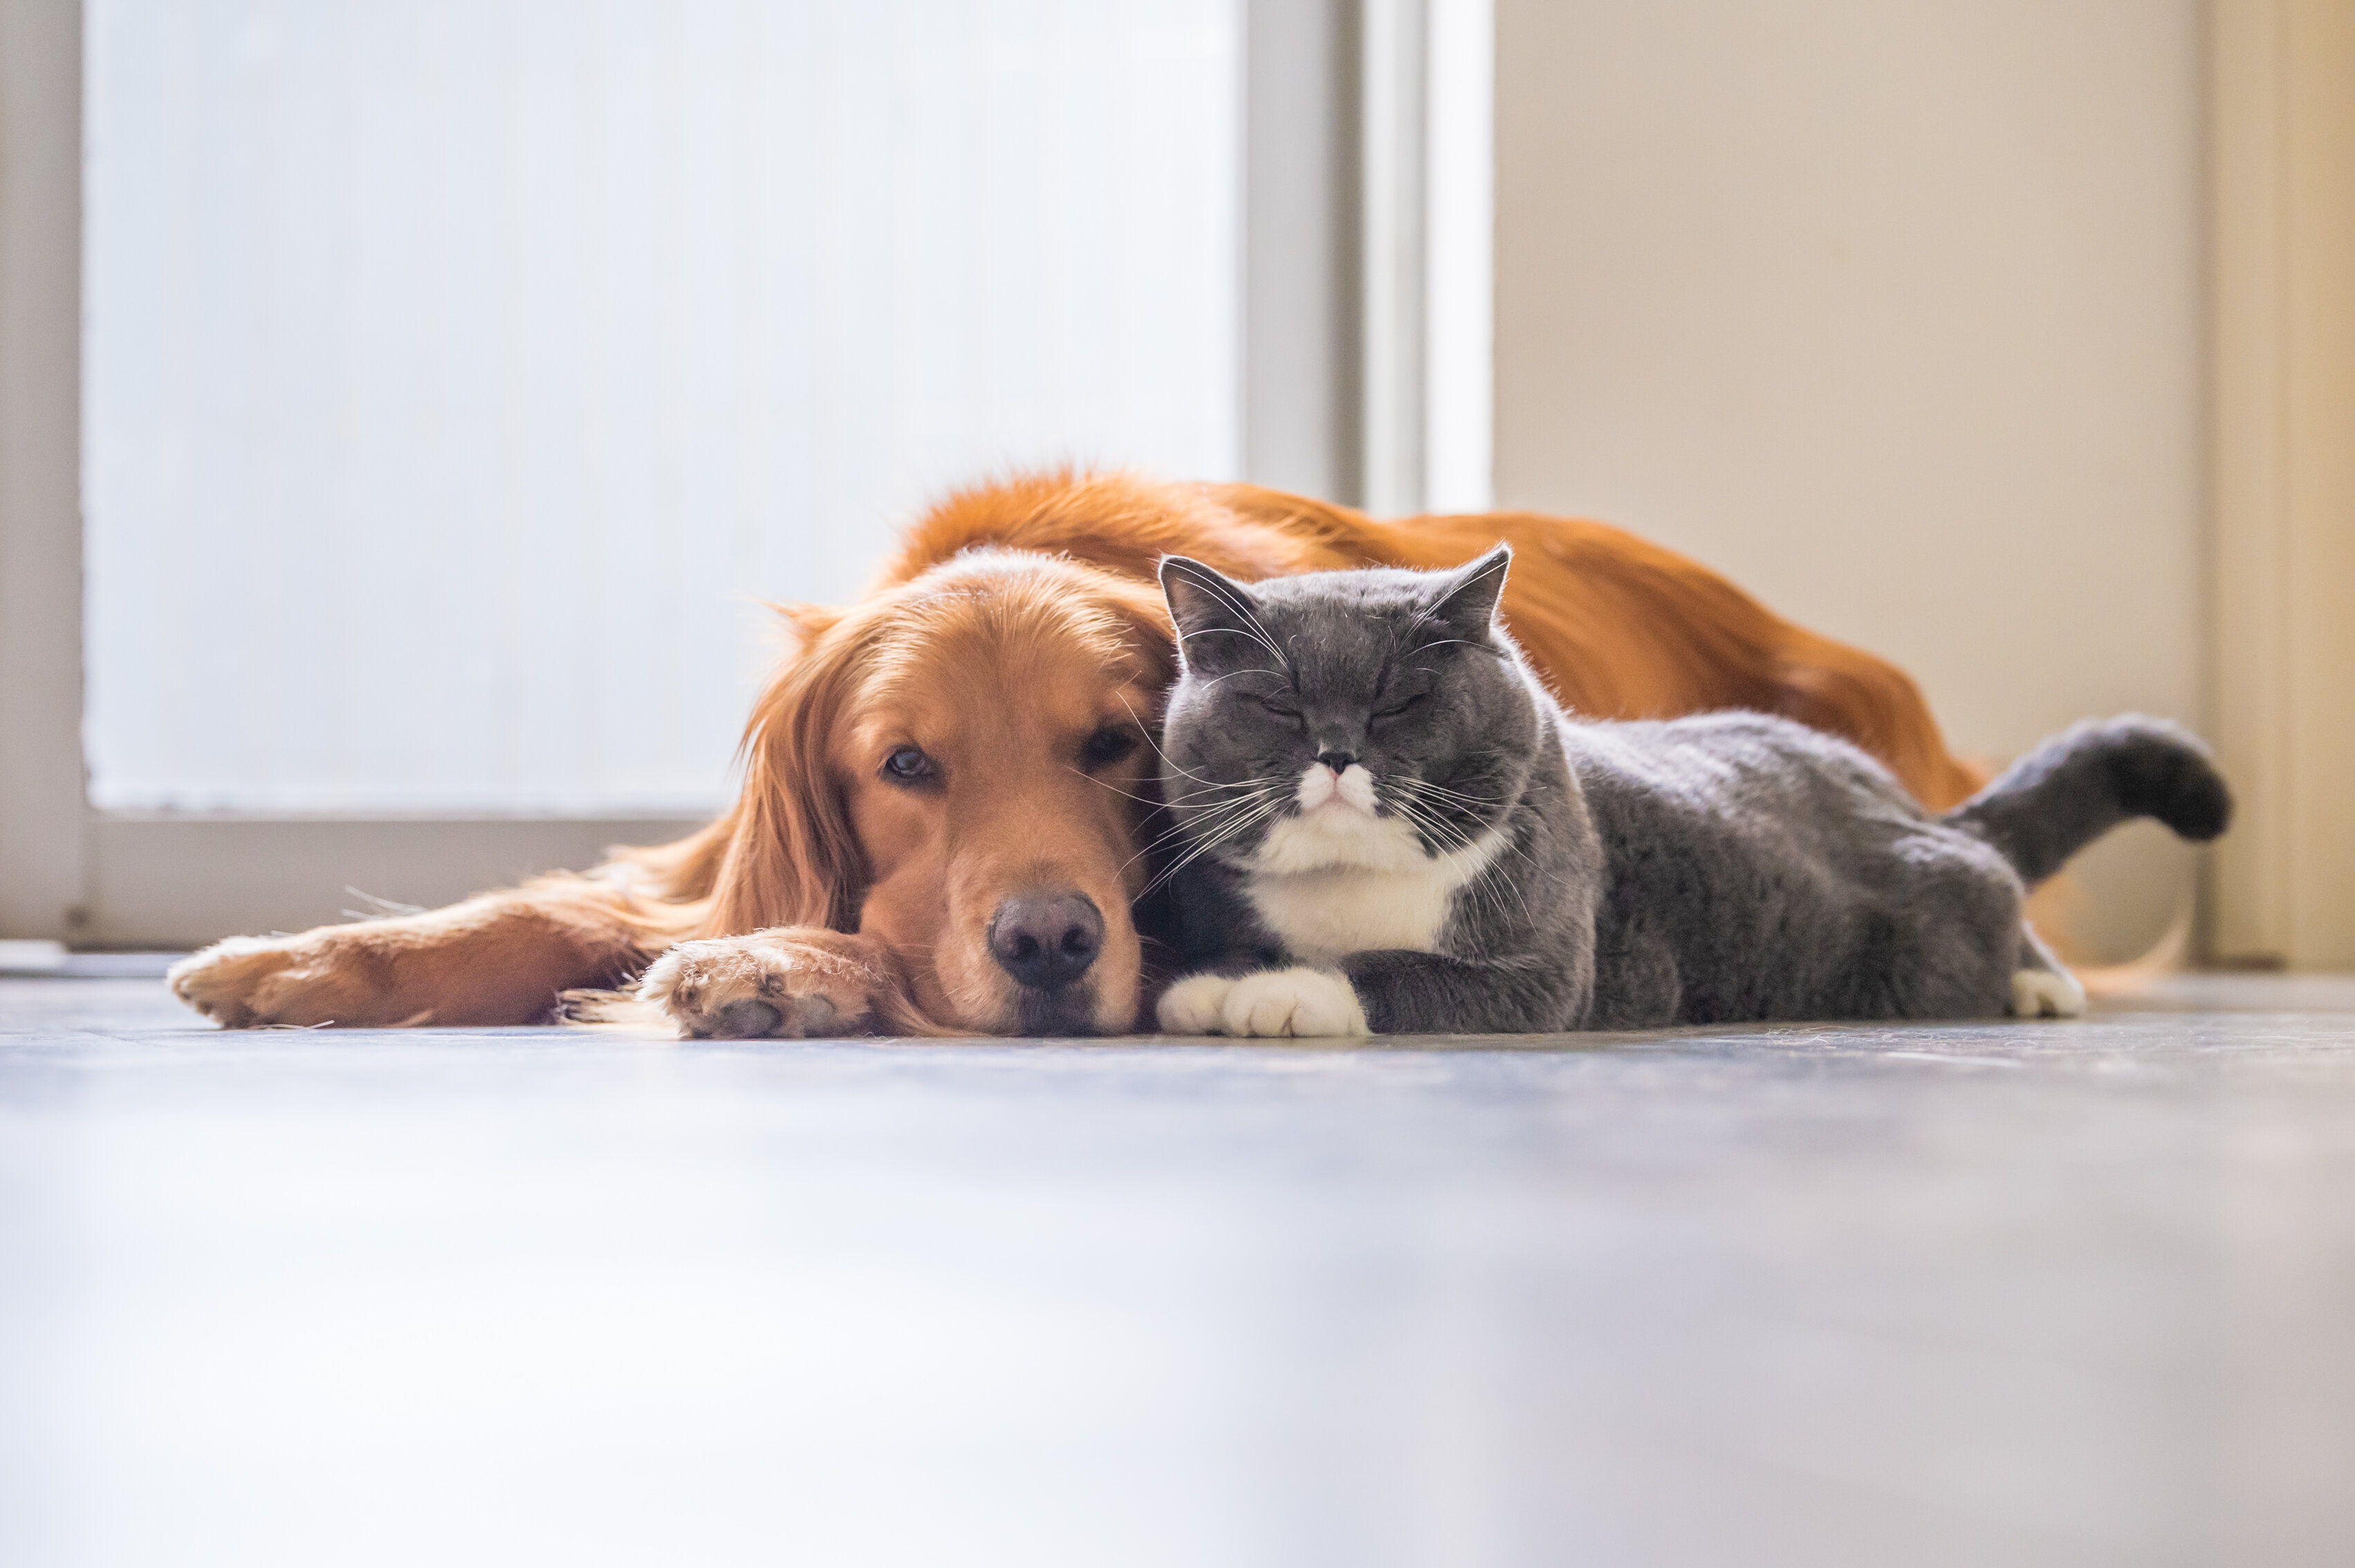 A golden retriever and grey cat with white markings lay on a wood floor together.